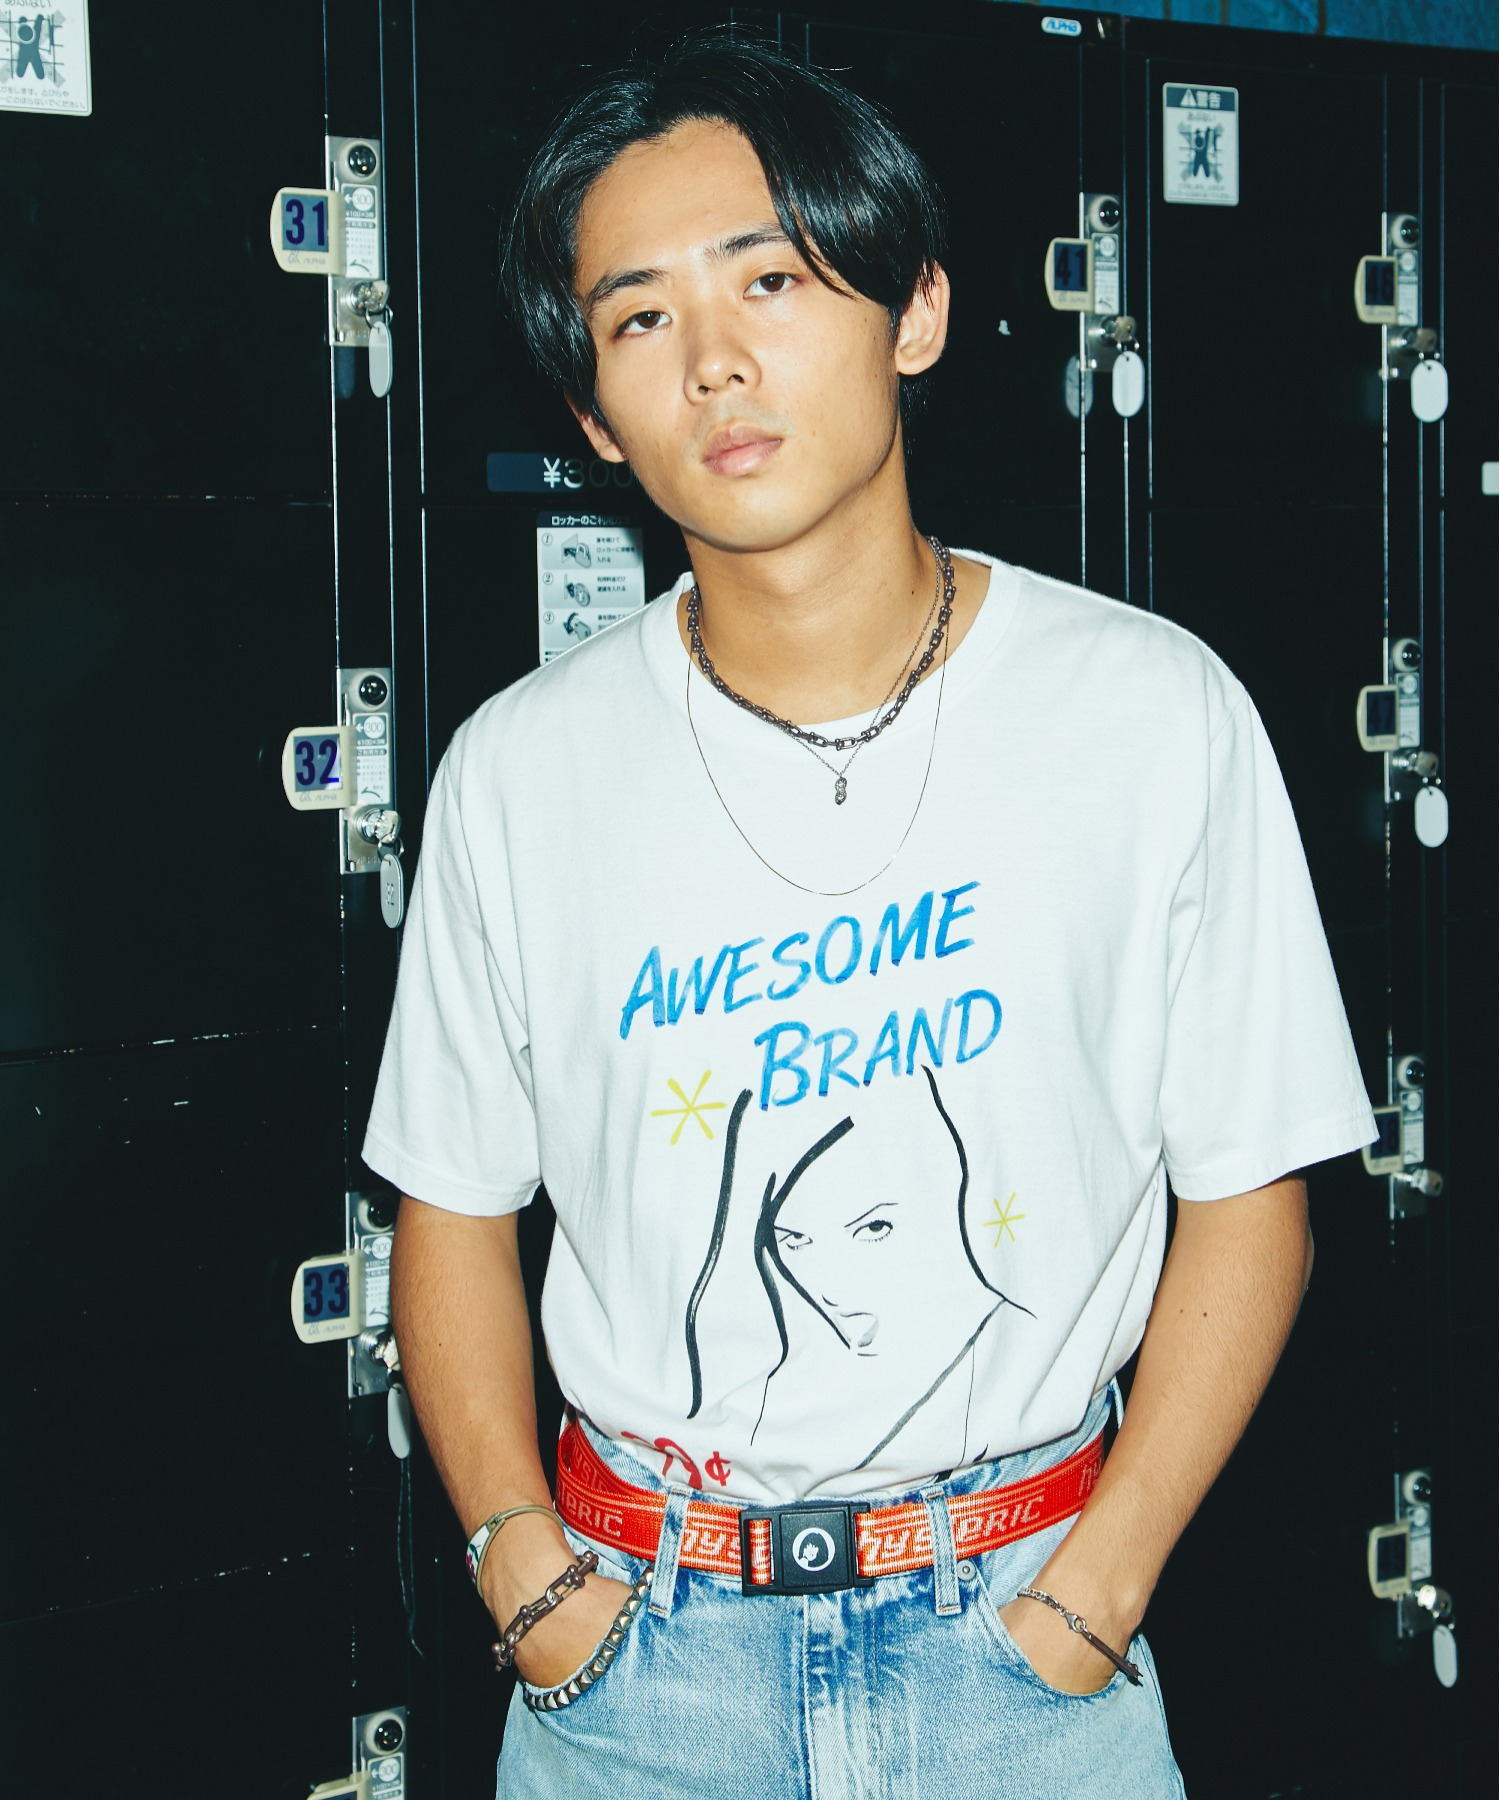 SIENA BARNES/AWESOME BRAND Tシャツ